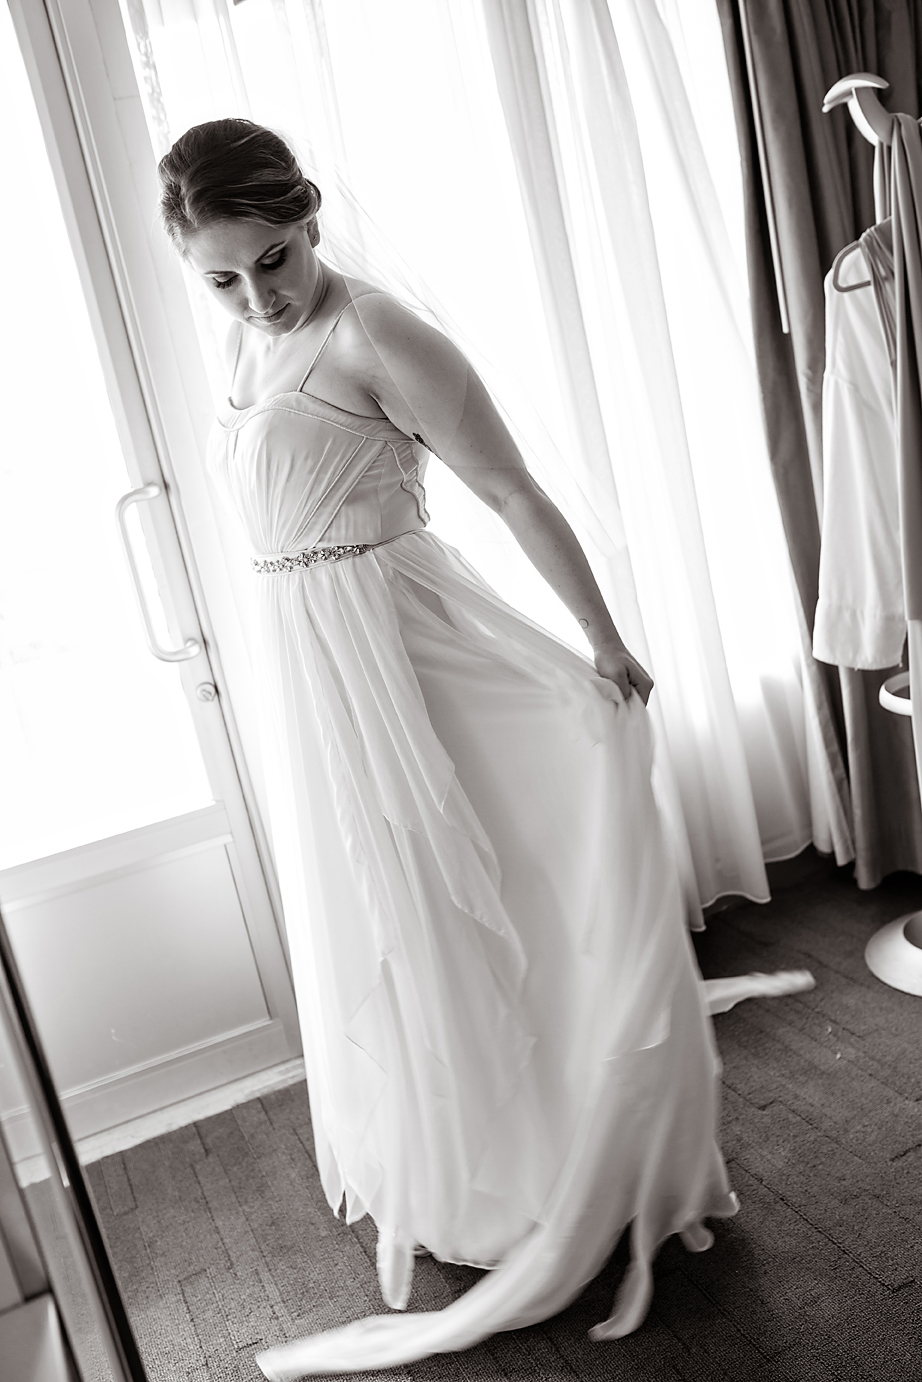 luxe-by-lindsay-charleston-south-carolina-sc-lowcountry-wedding-photographer-bride-in-dress.jpg